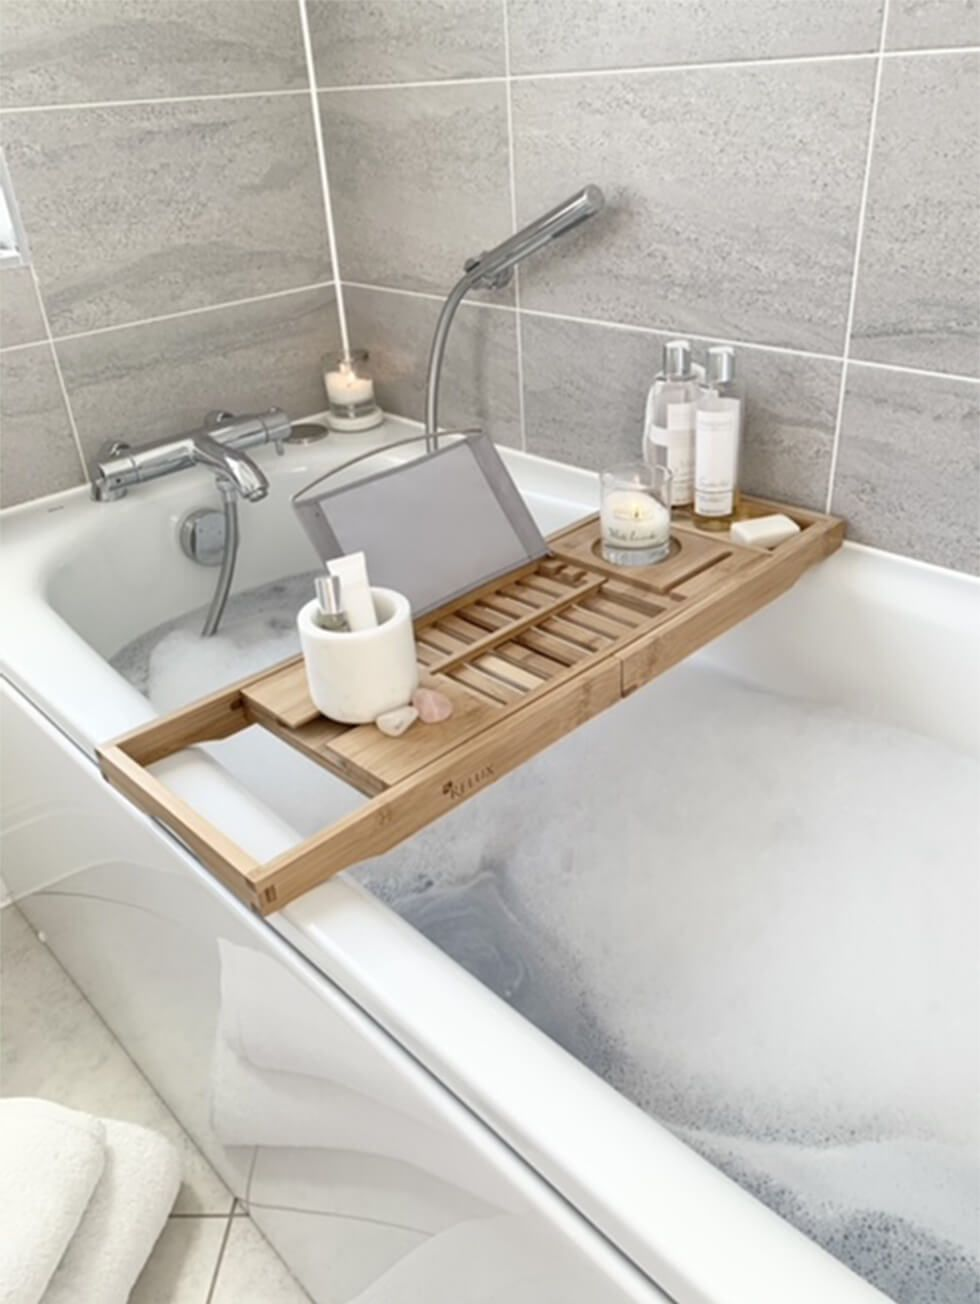 A bubble bath with a wooden bath tray decked with toiletries and a scented candle